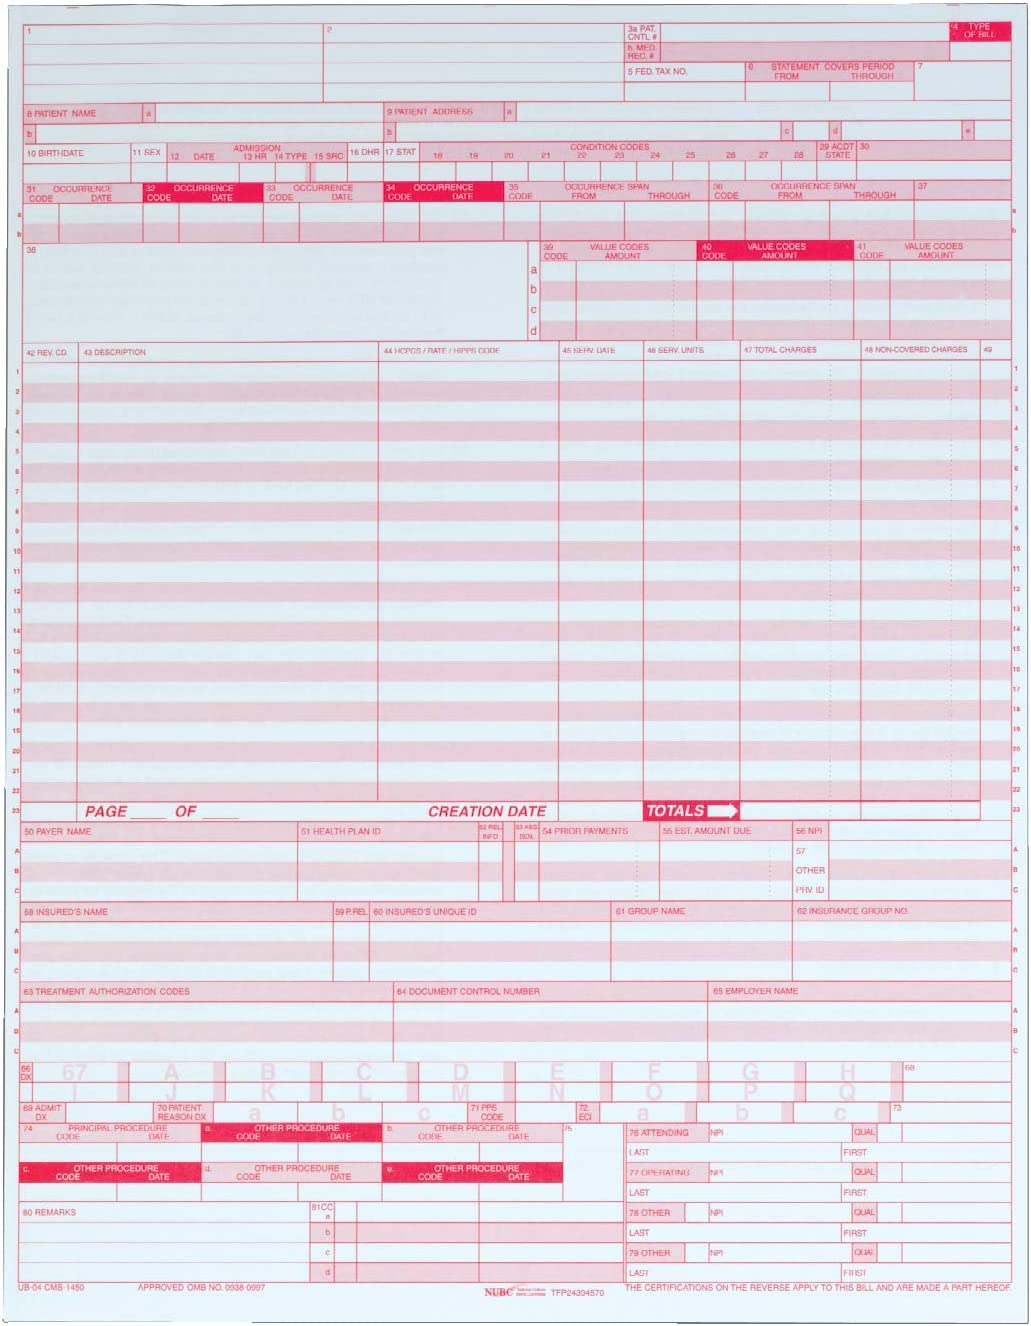 8.5 x 11 Inches 1 Part 2500 Sets per Carton 59870R White Adams UB-04 Continuous Hospital Insurance Claim Form Laser